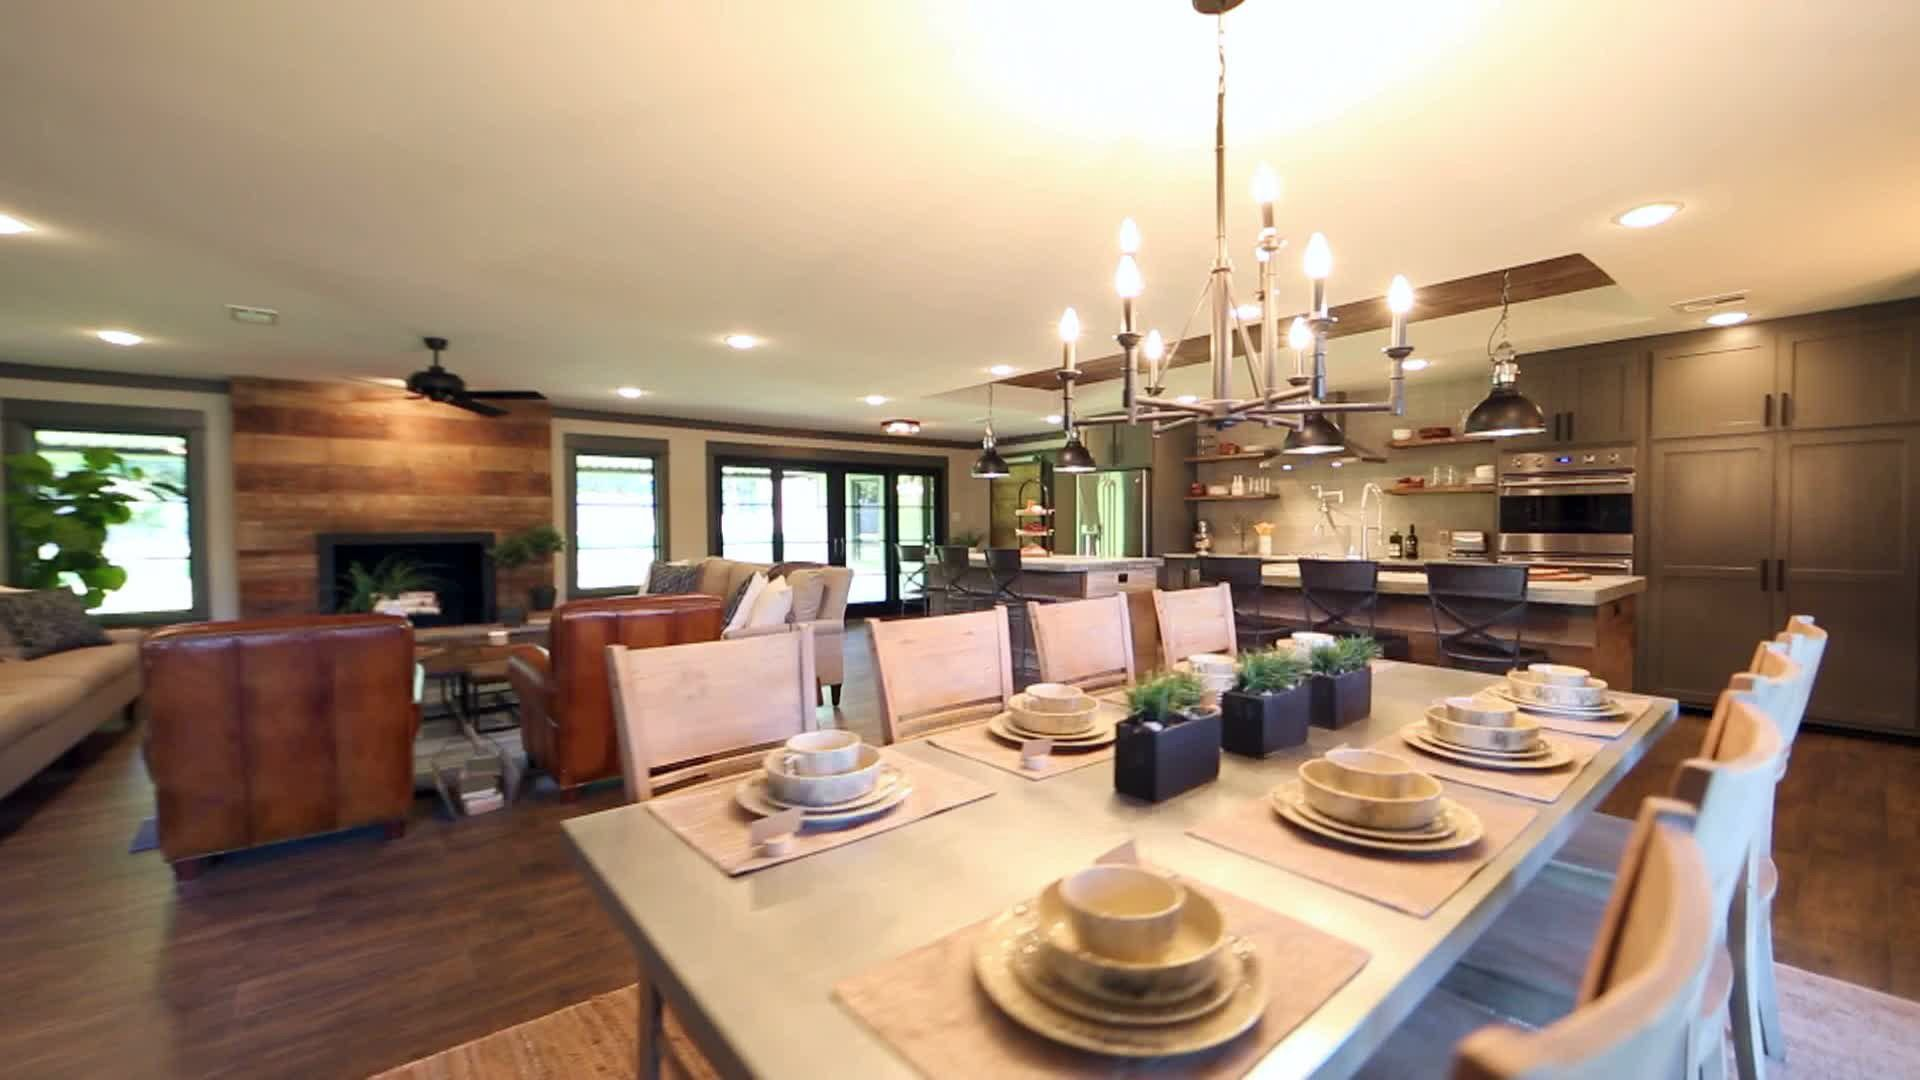 A fixer upper bachelor pad get chip jo 39 s single guy for Bachelor kitchen ideas